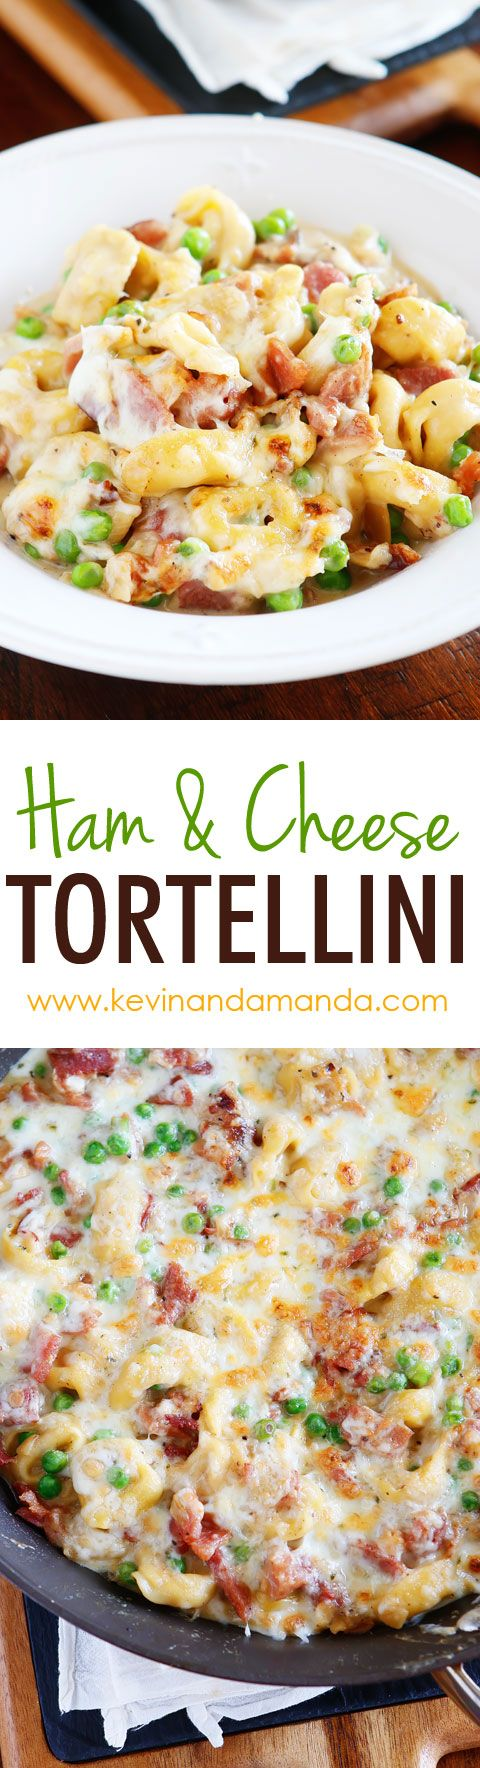 comfortable shoes for teachers uk A whole meal in one pan  This Ham  amp  Cheese Tortellini is creamy  cheesy  deliciousness in every bite  Make it in 15 minutes and everything cooks in one pan  so you only have one dish to wash  The perfect quick and easy weeknight dinner that everyone will love